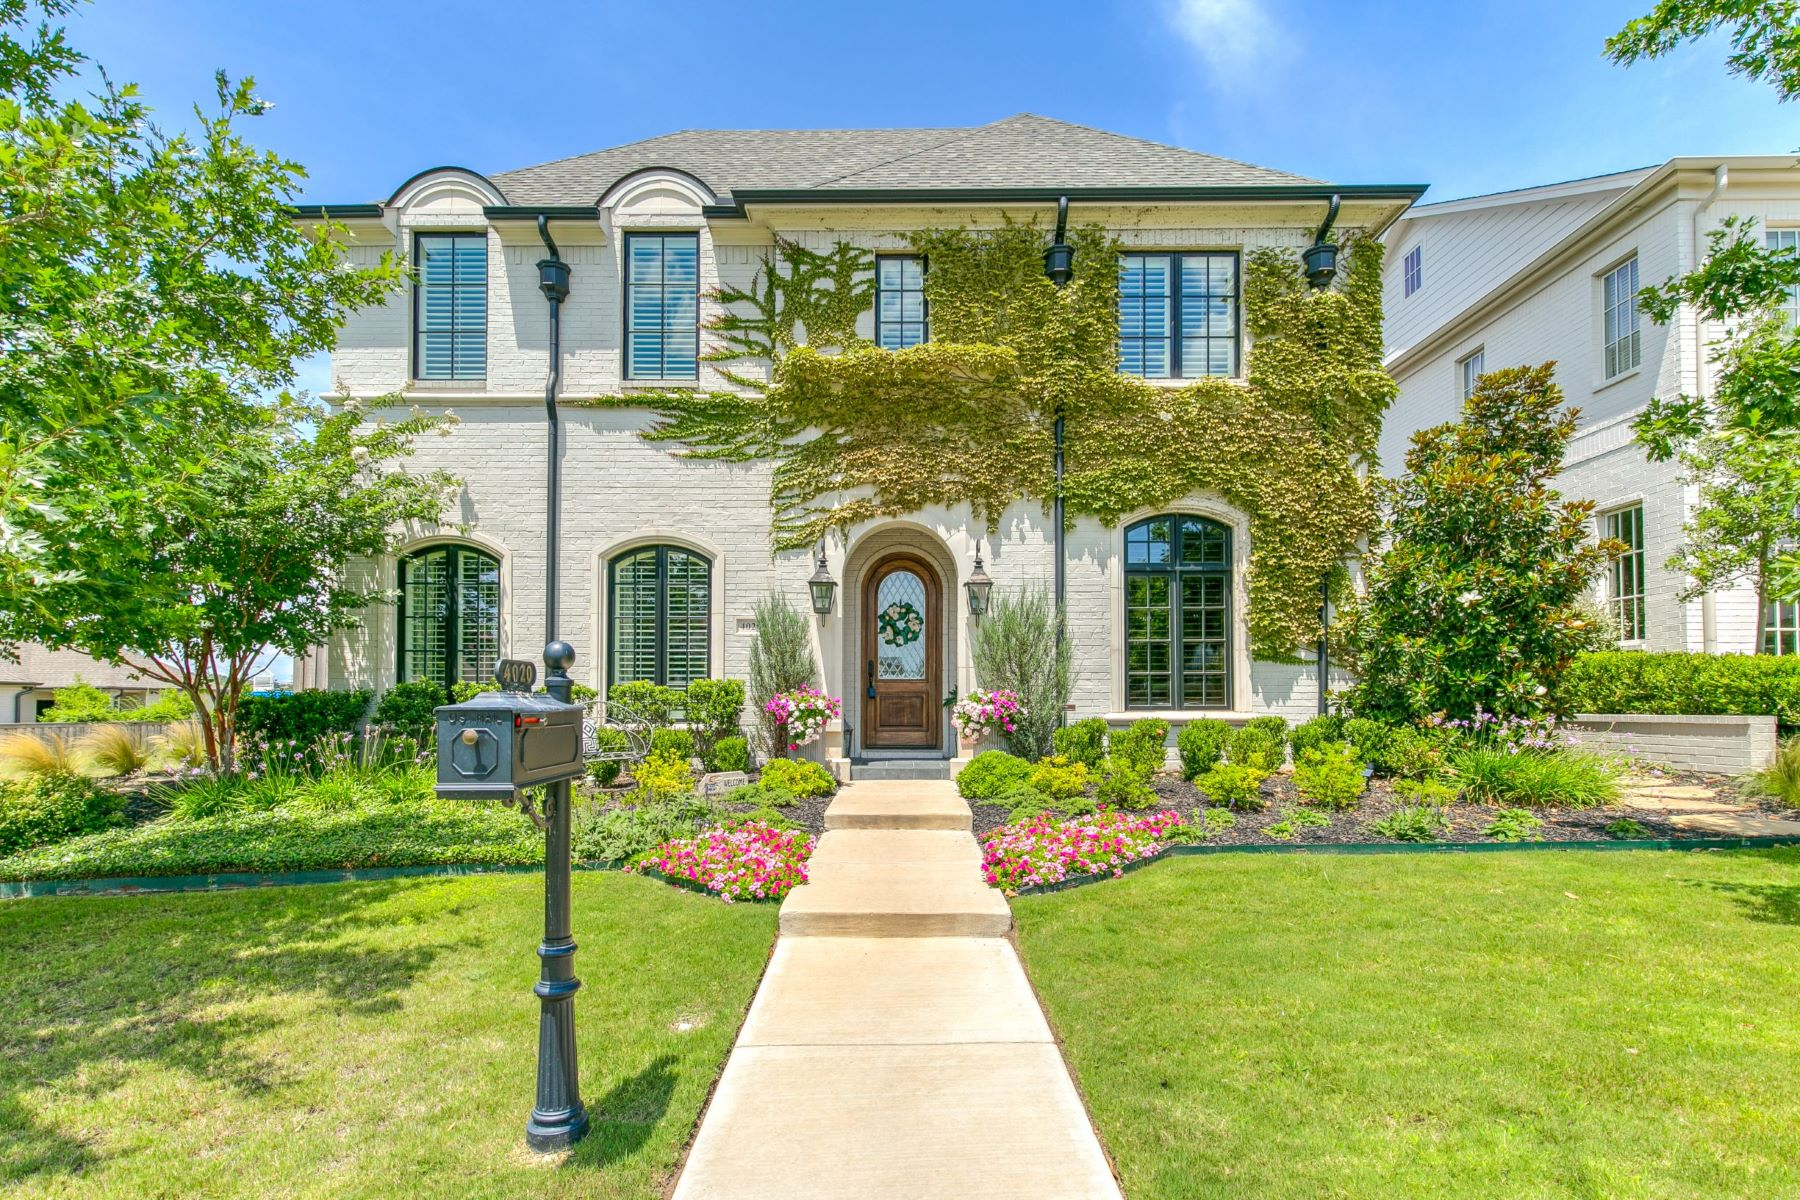 Single Family Homes for Active at Luxurious Traditional in Edwards Ranch Riverhills 4020 Bent Elm Lane Fort Worth, Texas 76109 United States